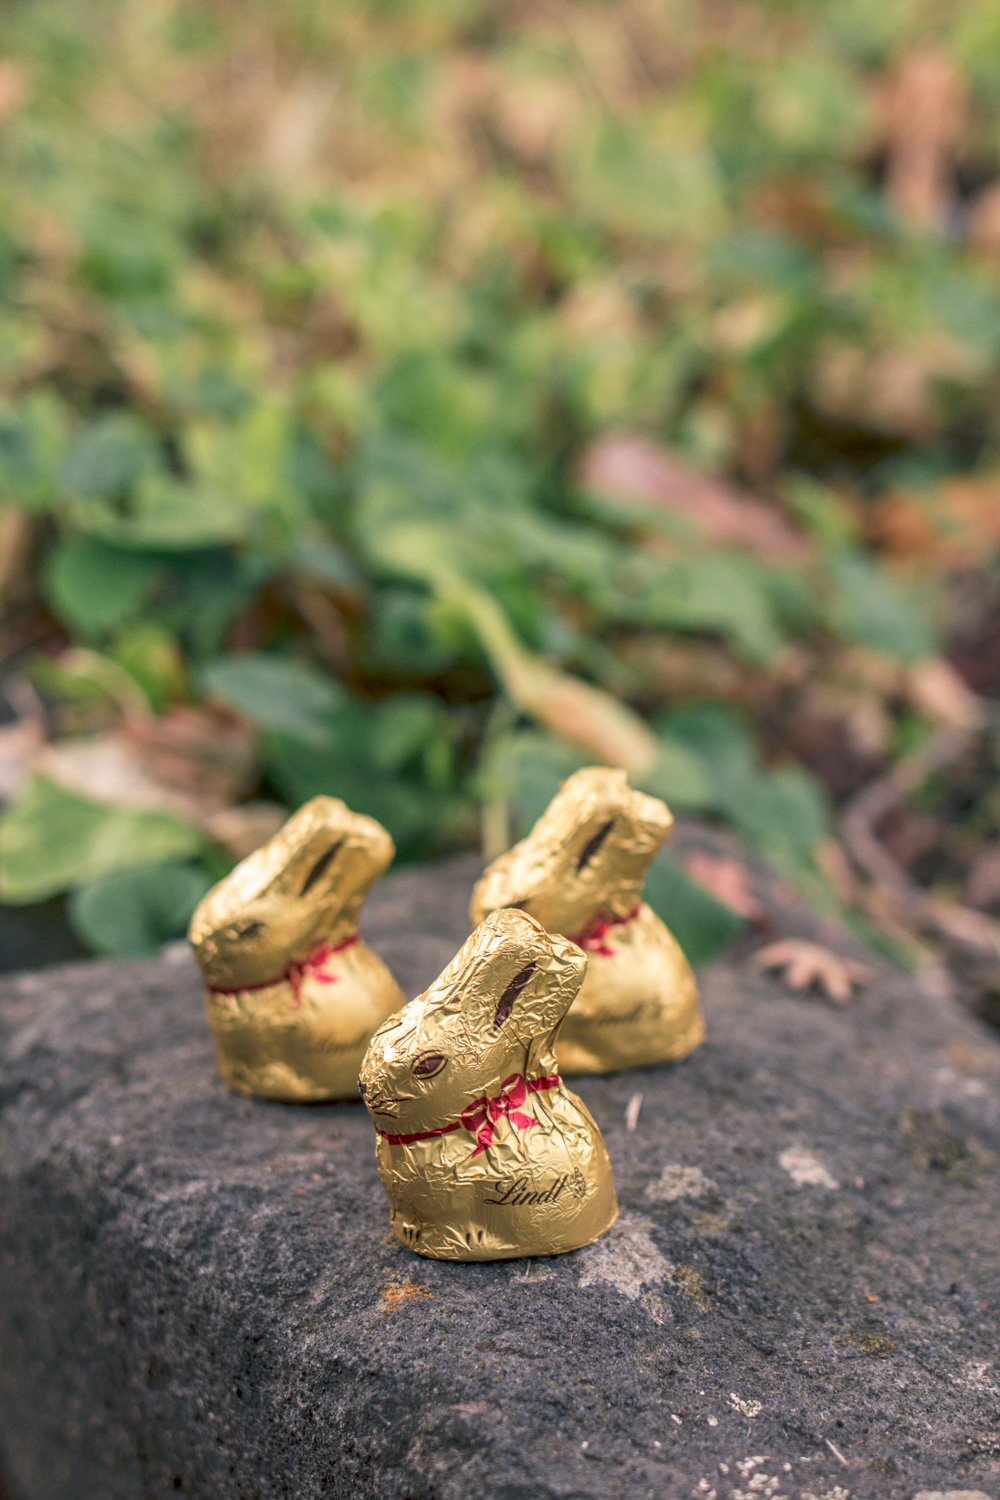 Chocolate easter bunnies and bilbies at Autumn themed easter egg hunt